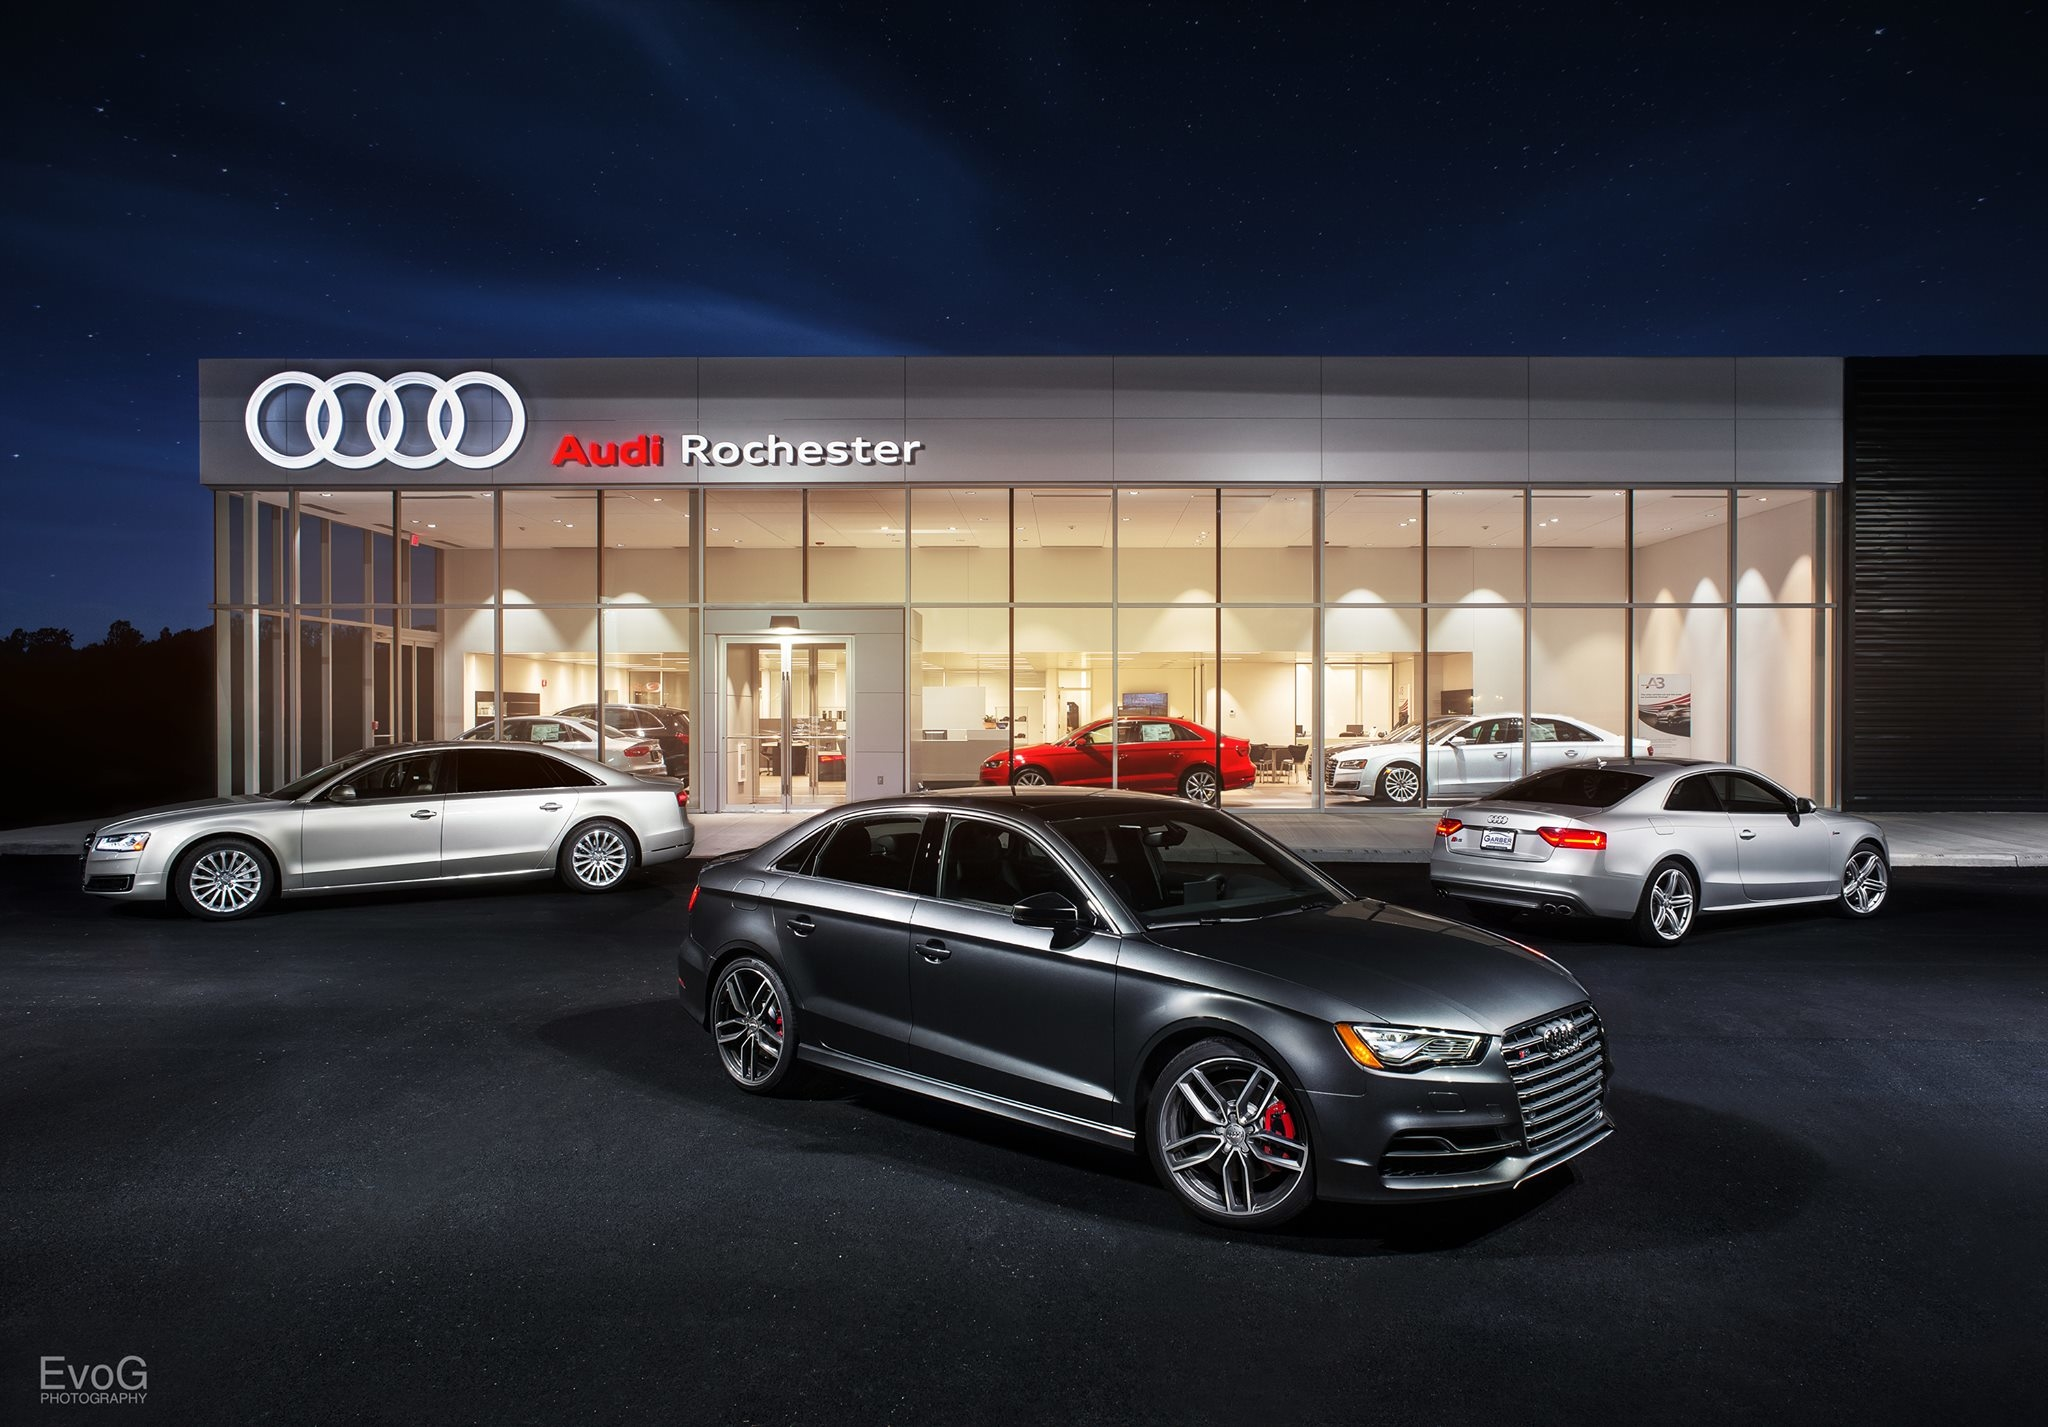 Audi rochester in rochester ny 585 334 1 for Medical motor service rochester ny